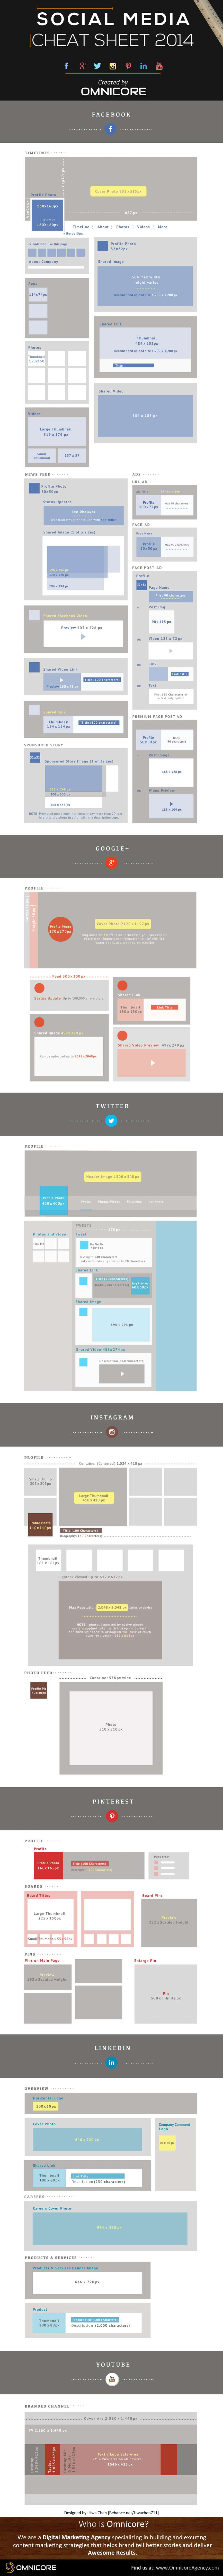 The Essential 2014 Social Media Design & Sizing Cheat Sheet #infographic